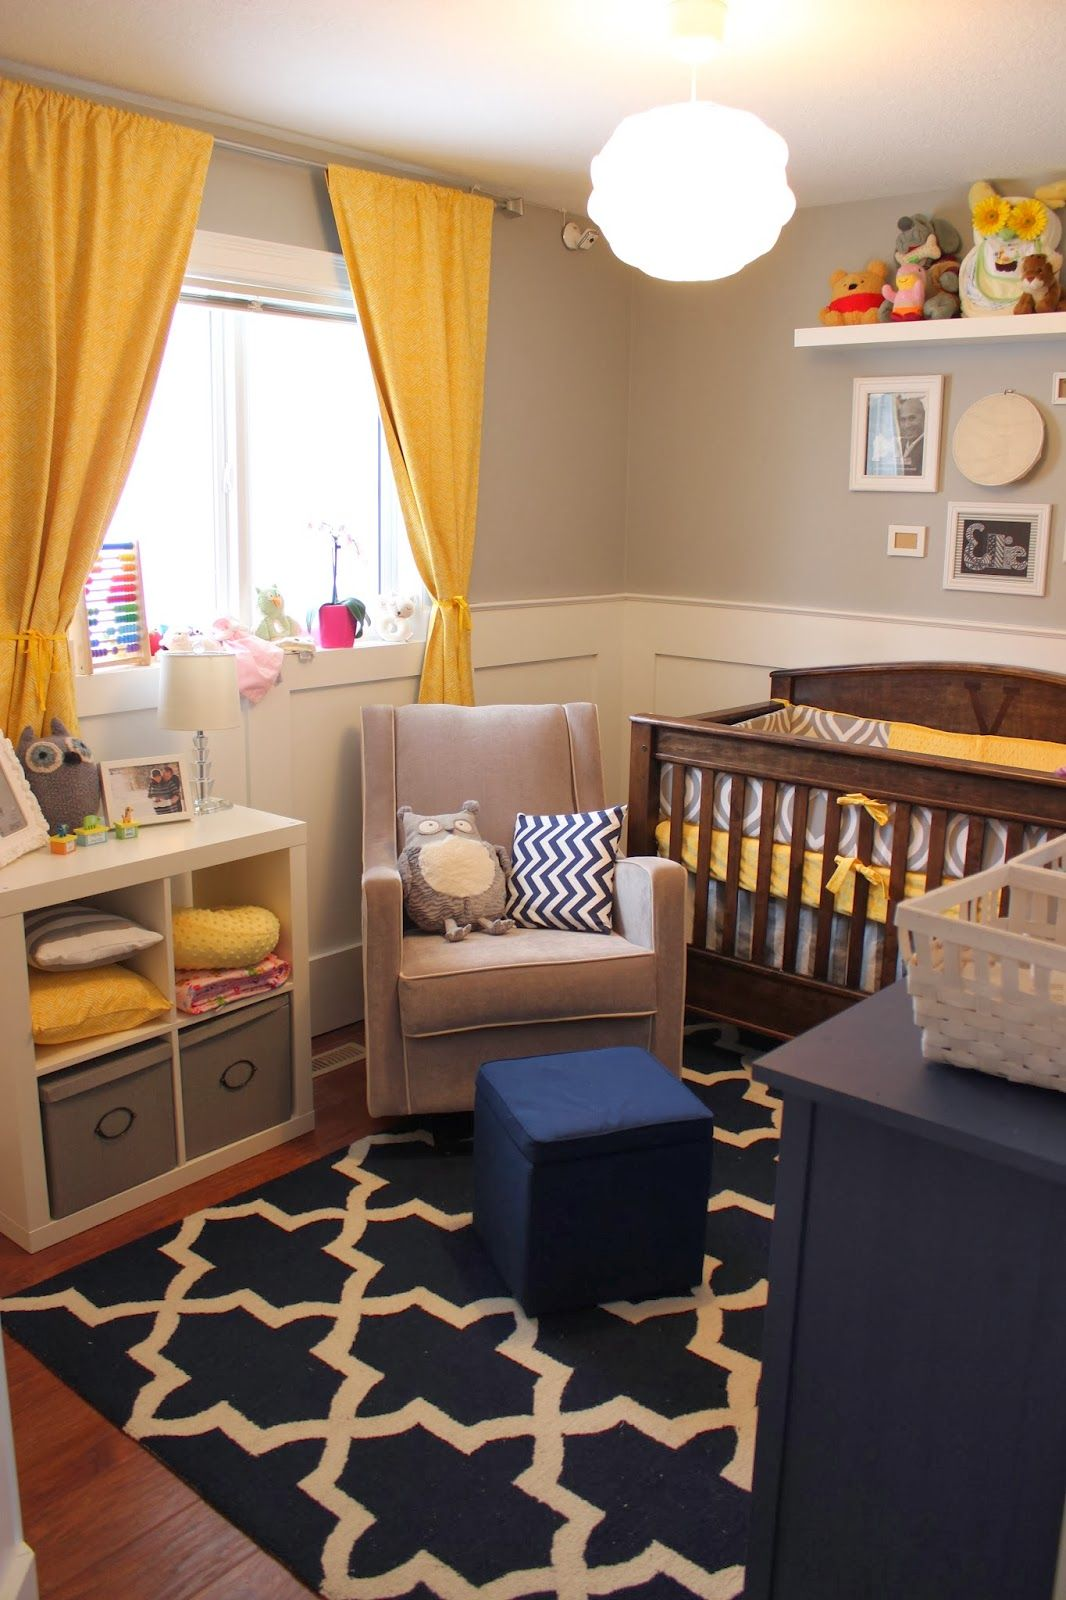 Baby Boy Room Color Ideas: Not A Fan Of The Decor But This Is The Same Floorplan Of